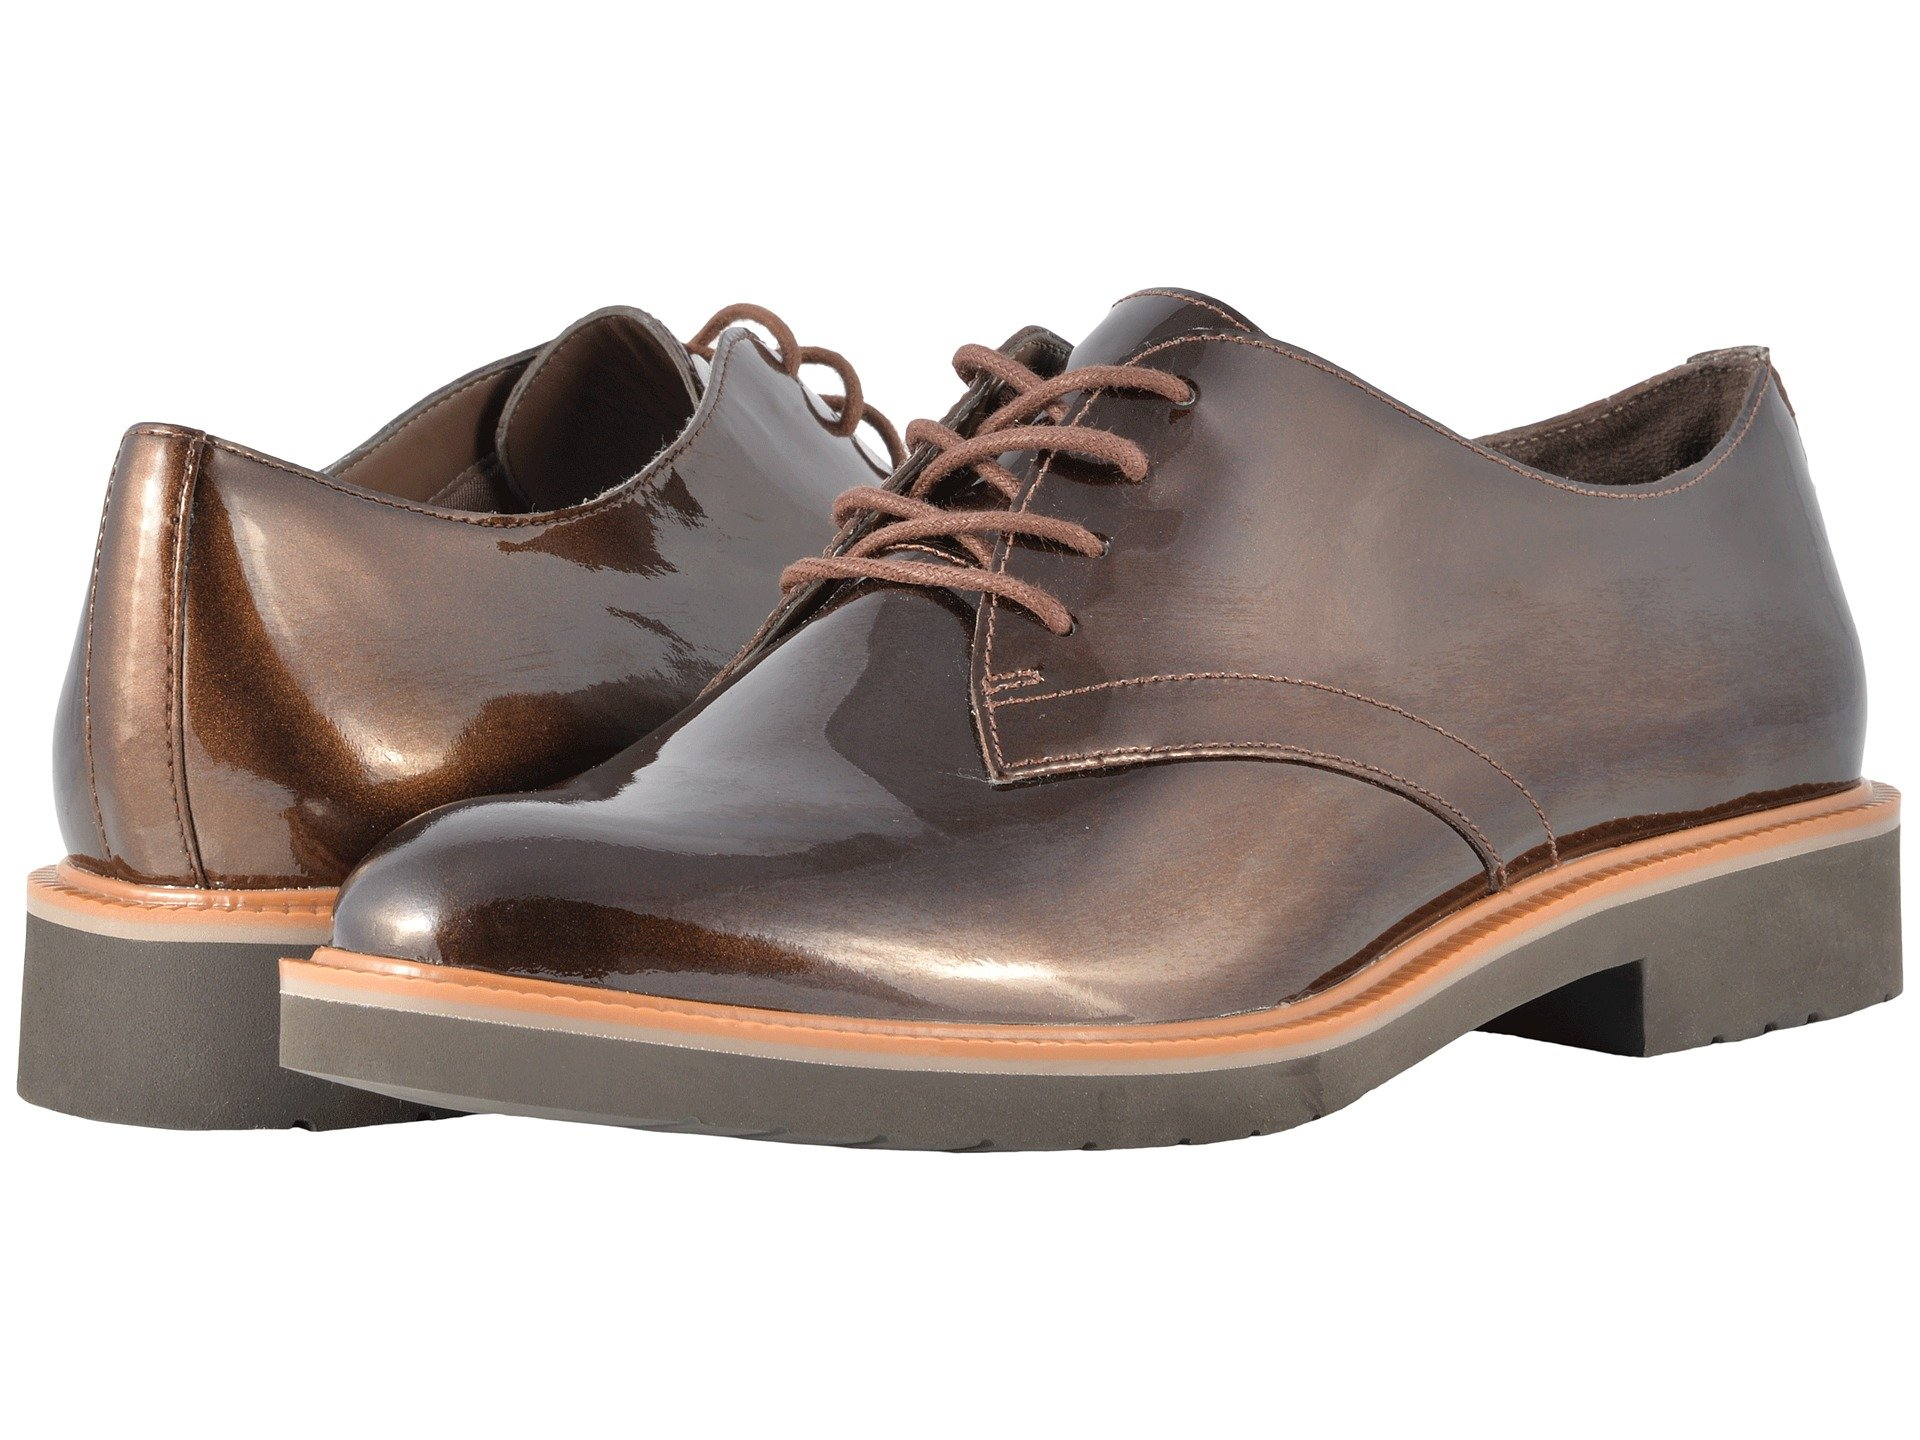 Zapato Casual para Mujer Rockport Total Motion Abelle Lace-Up  + Rockport en VeoyCompro.net